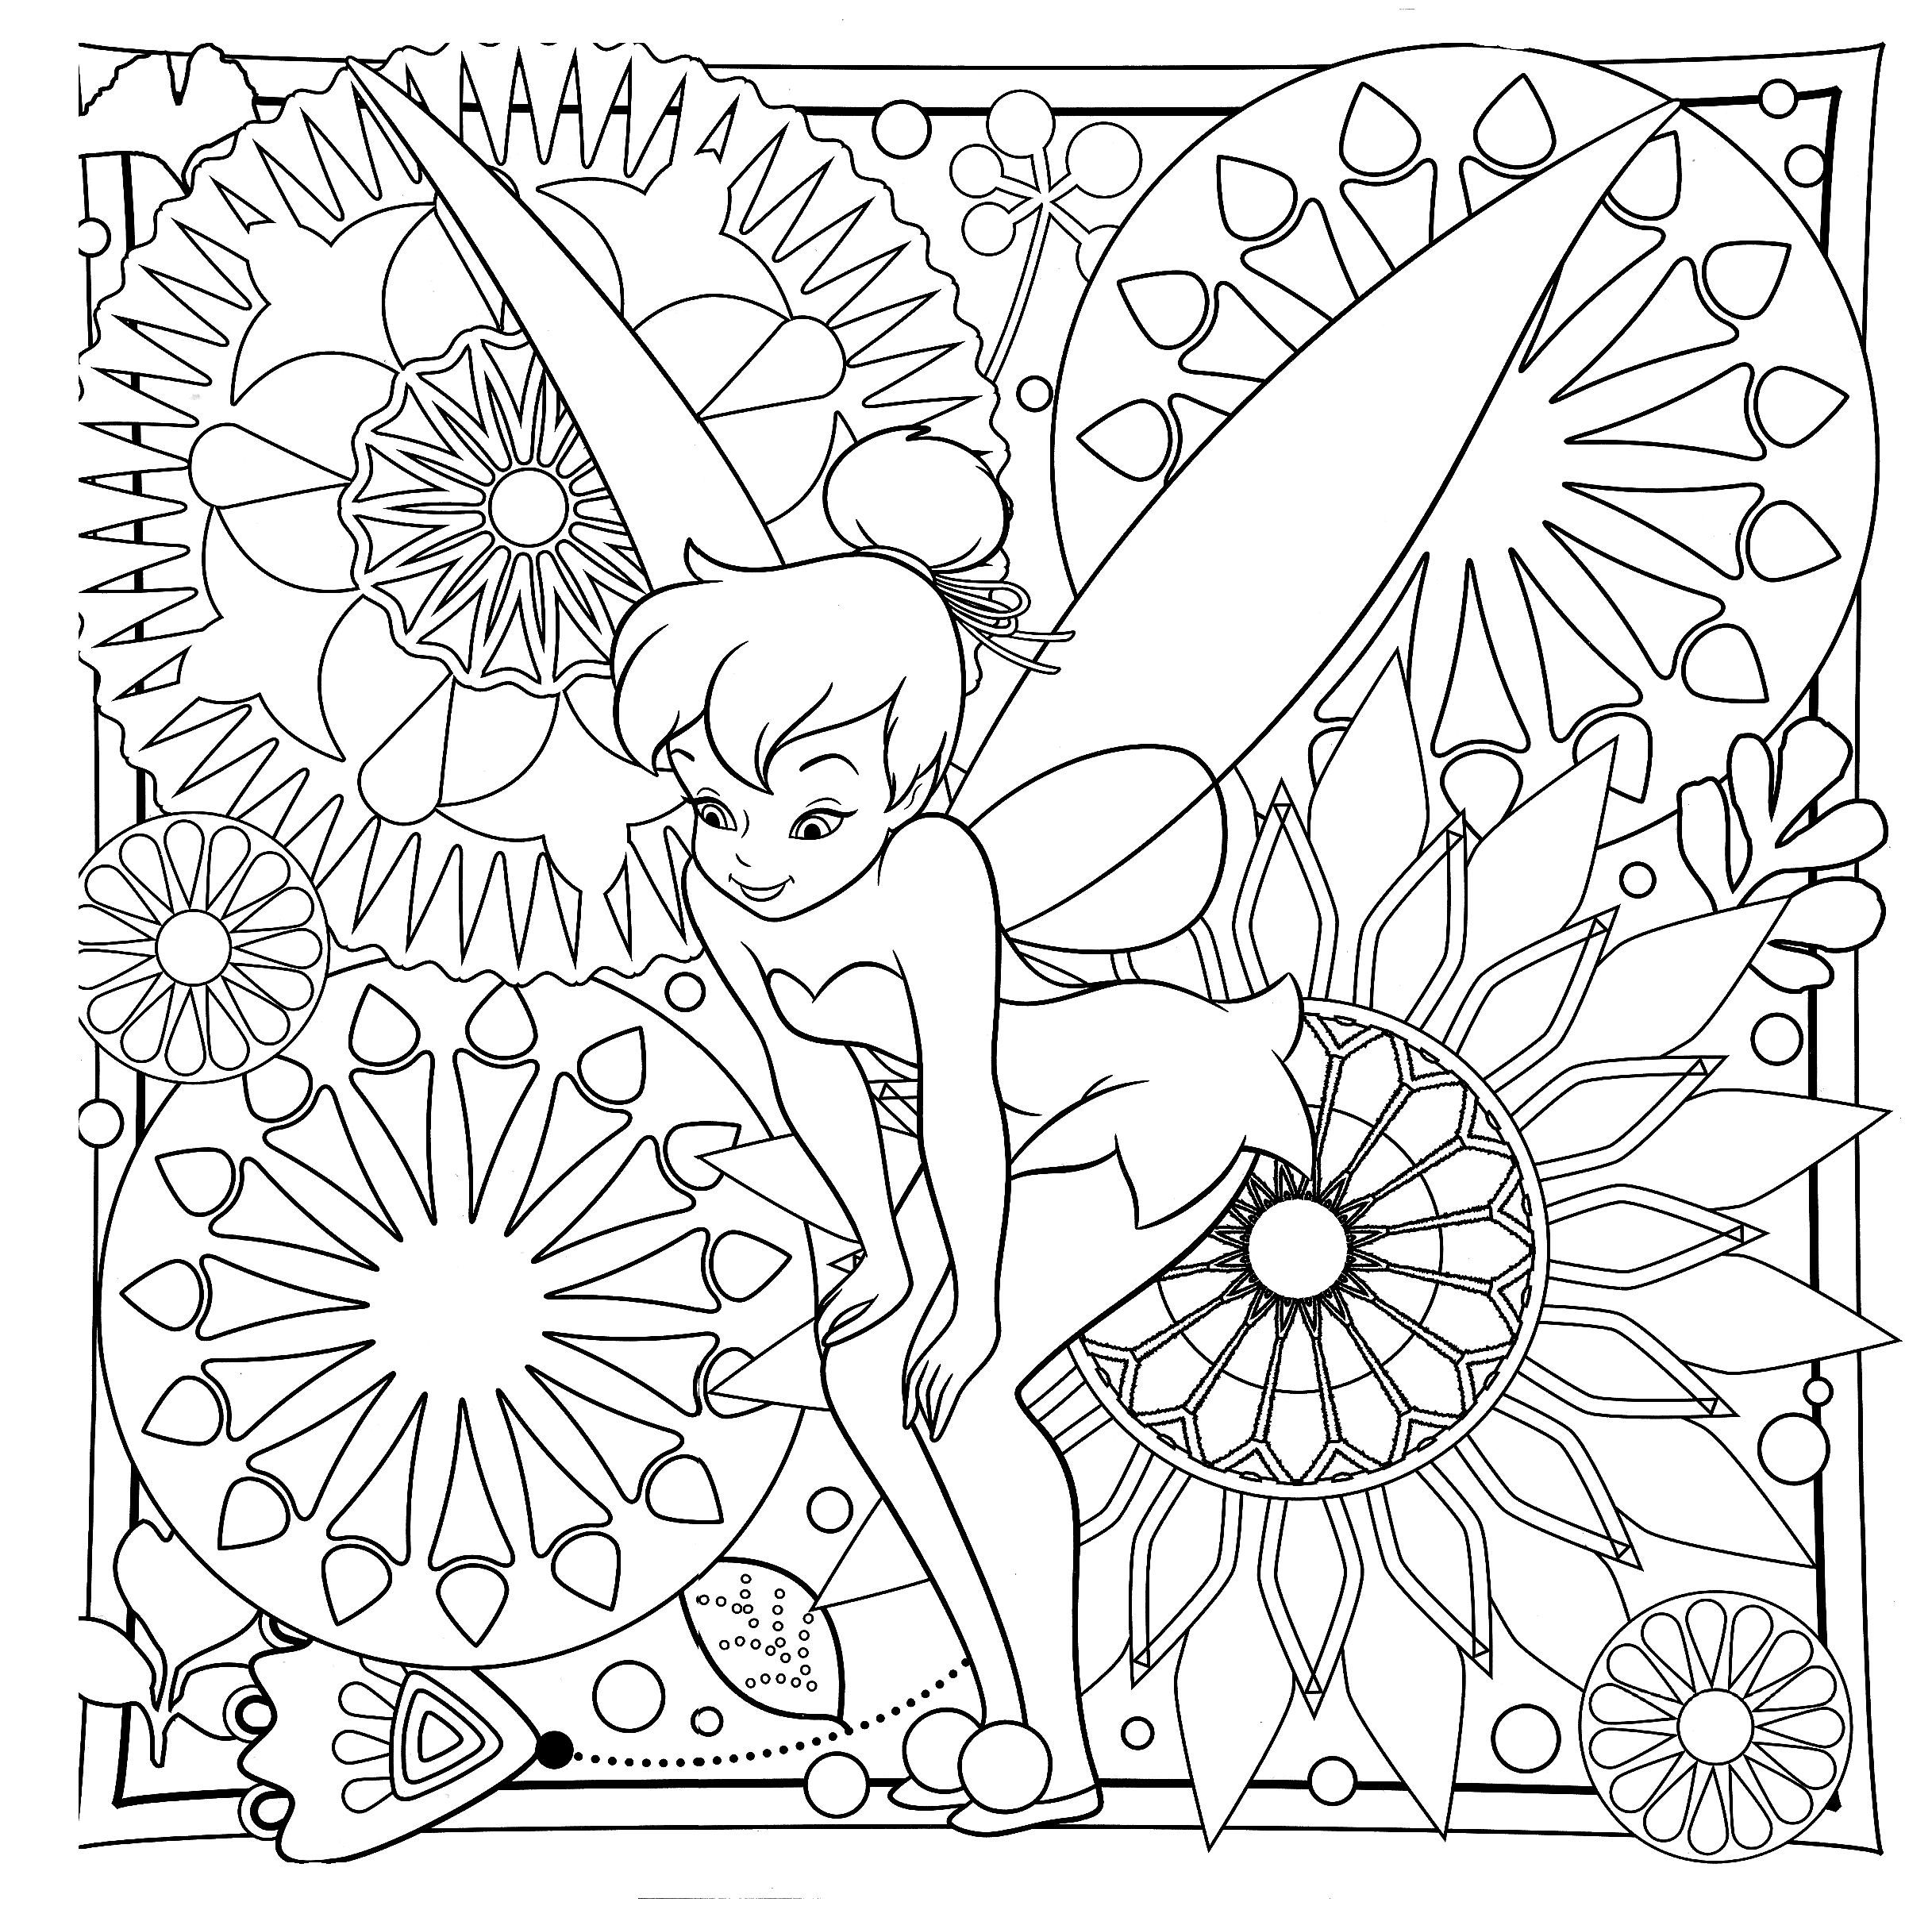 Tinkerbell Difficult Coloring Page Tinkerbell Coloring Pages Butterfly Coloring Page Horse Coloring Pages